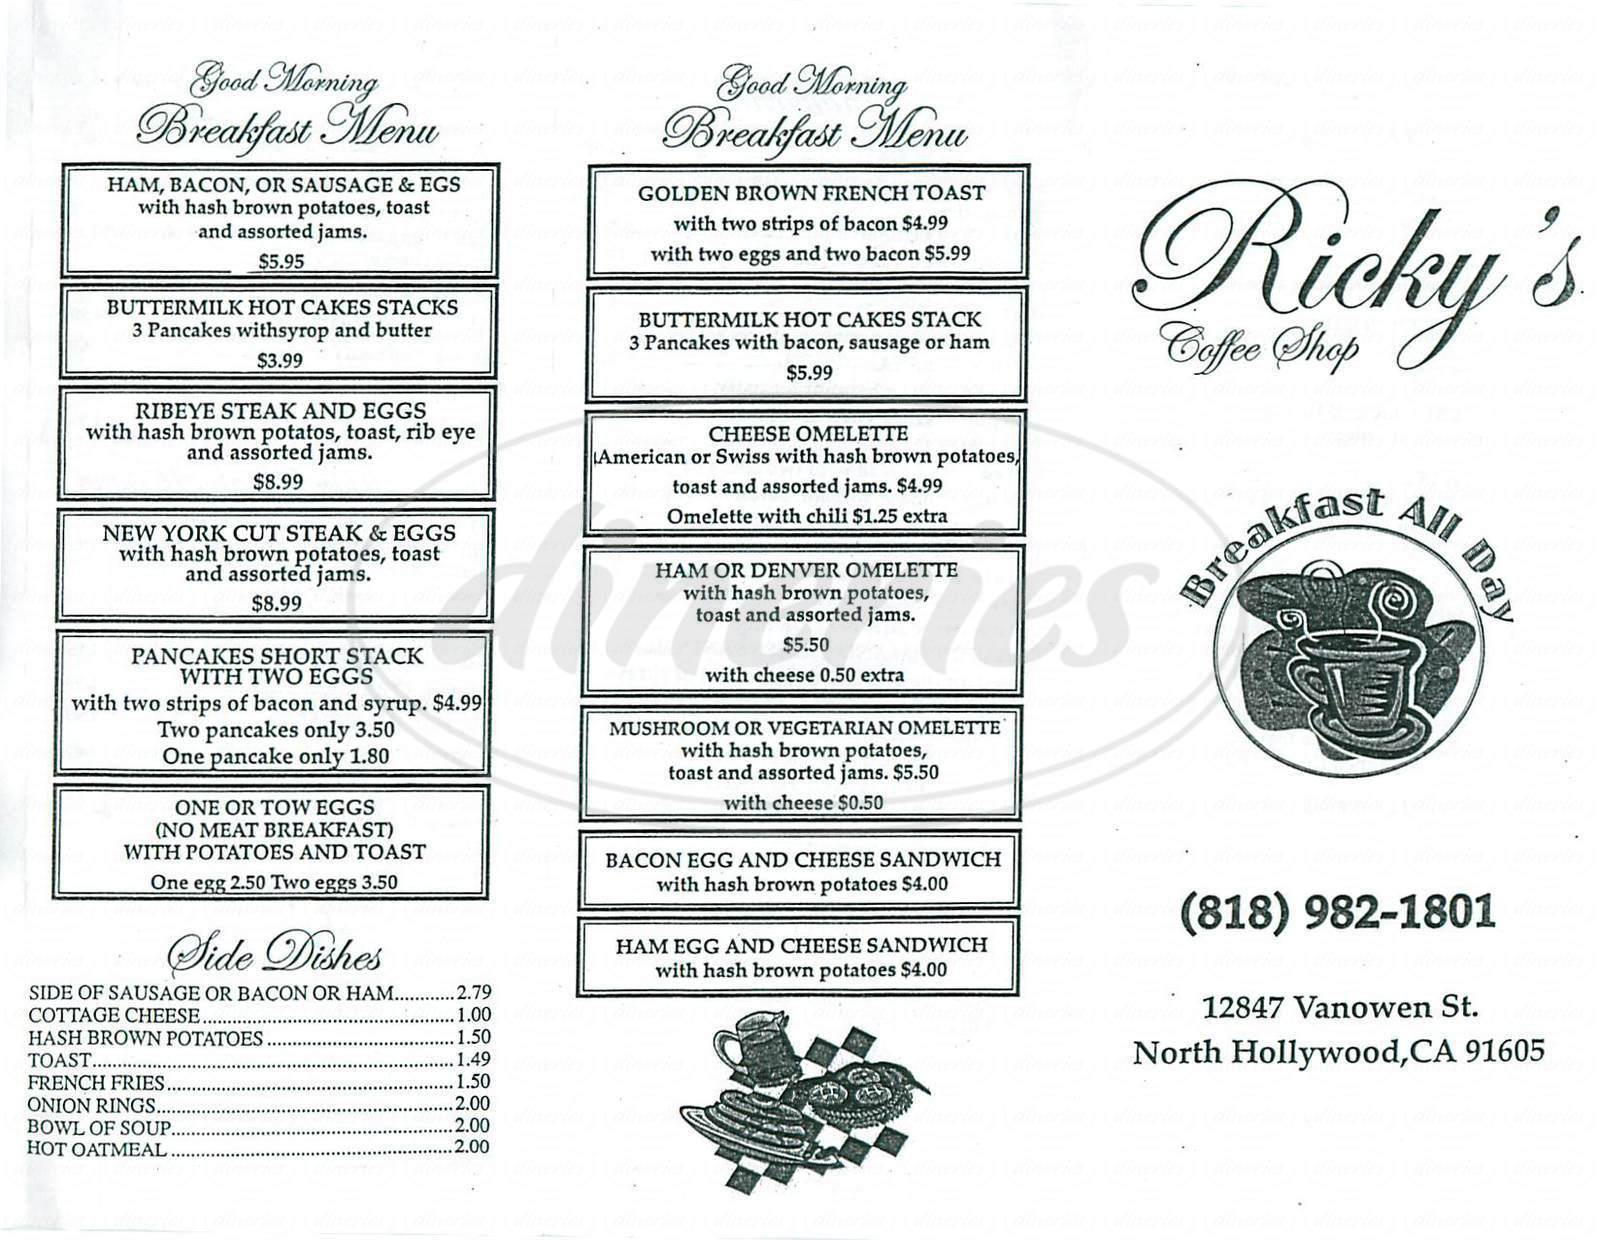 menu for Ricky's Coffee Shop